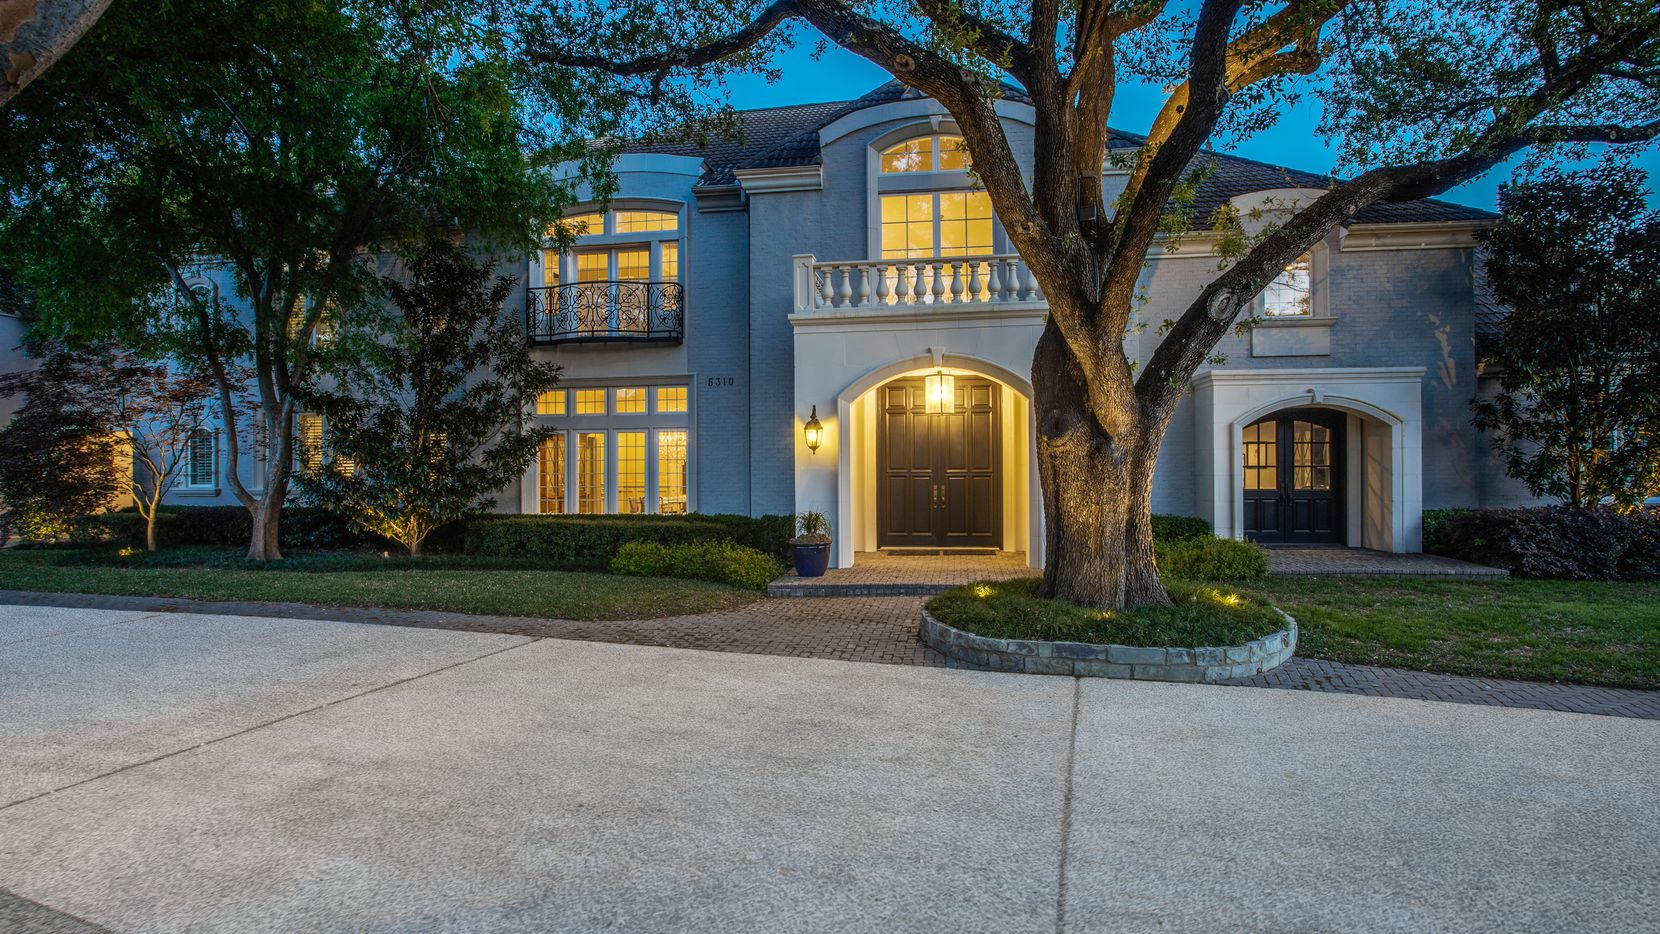 A look at the property at 5310 Meaders in Dallas.